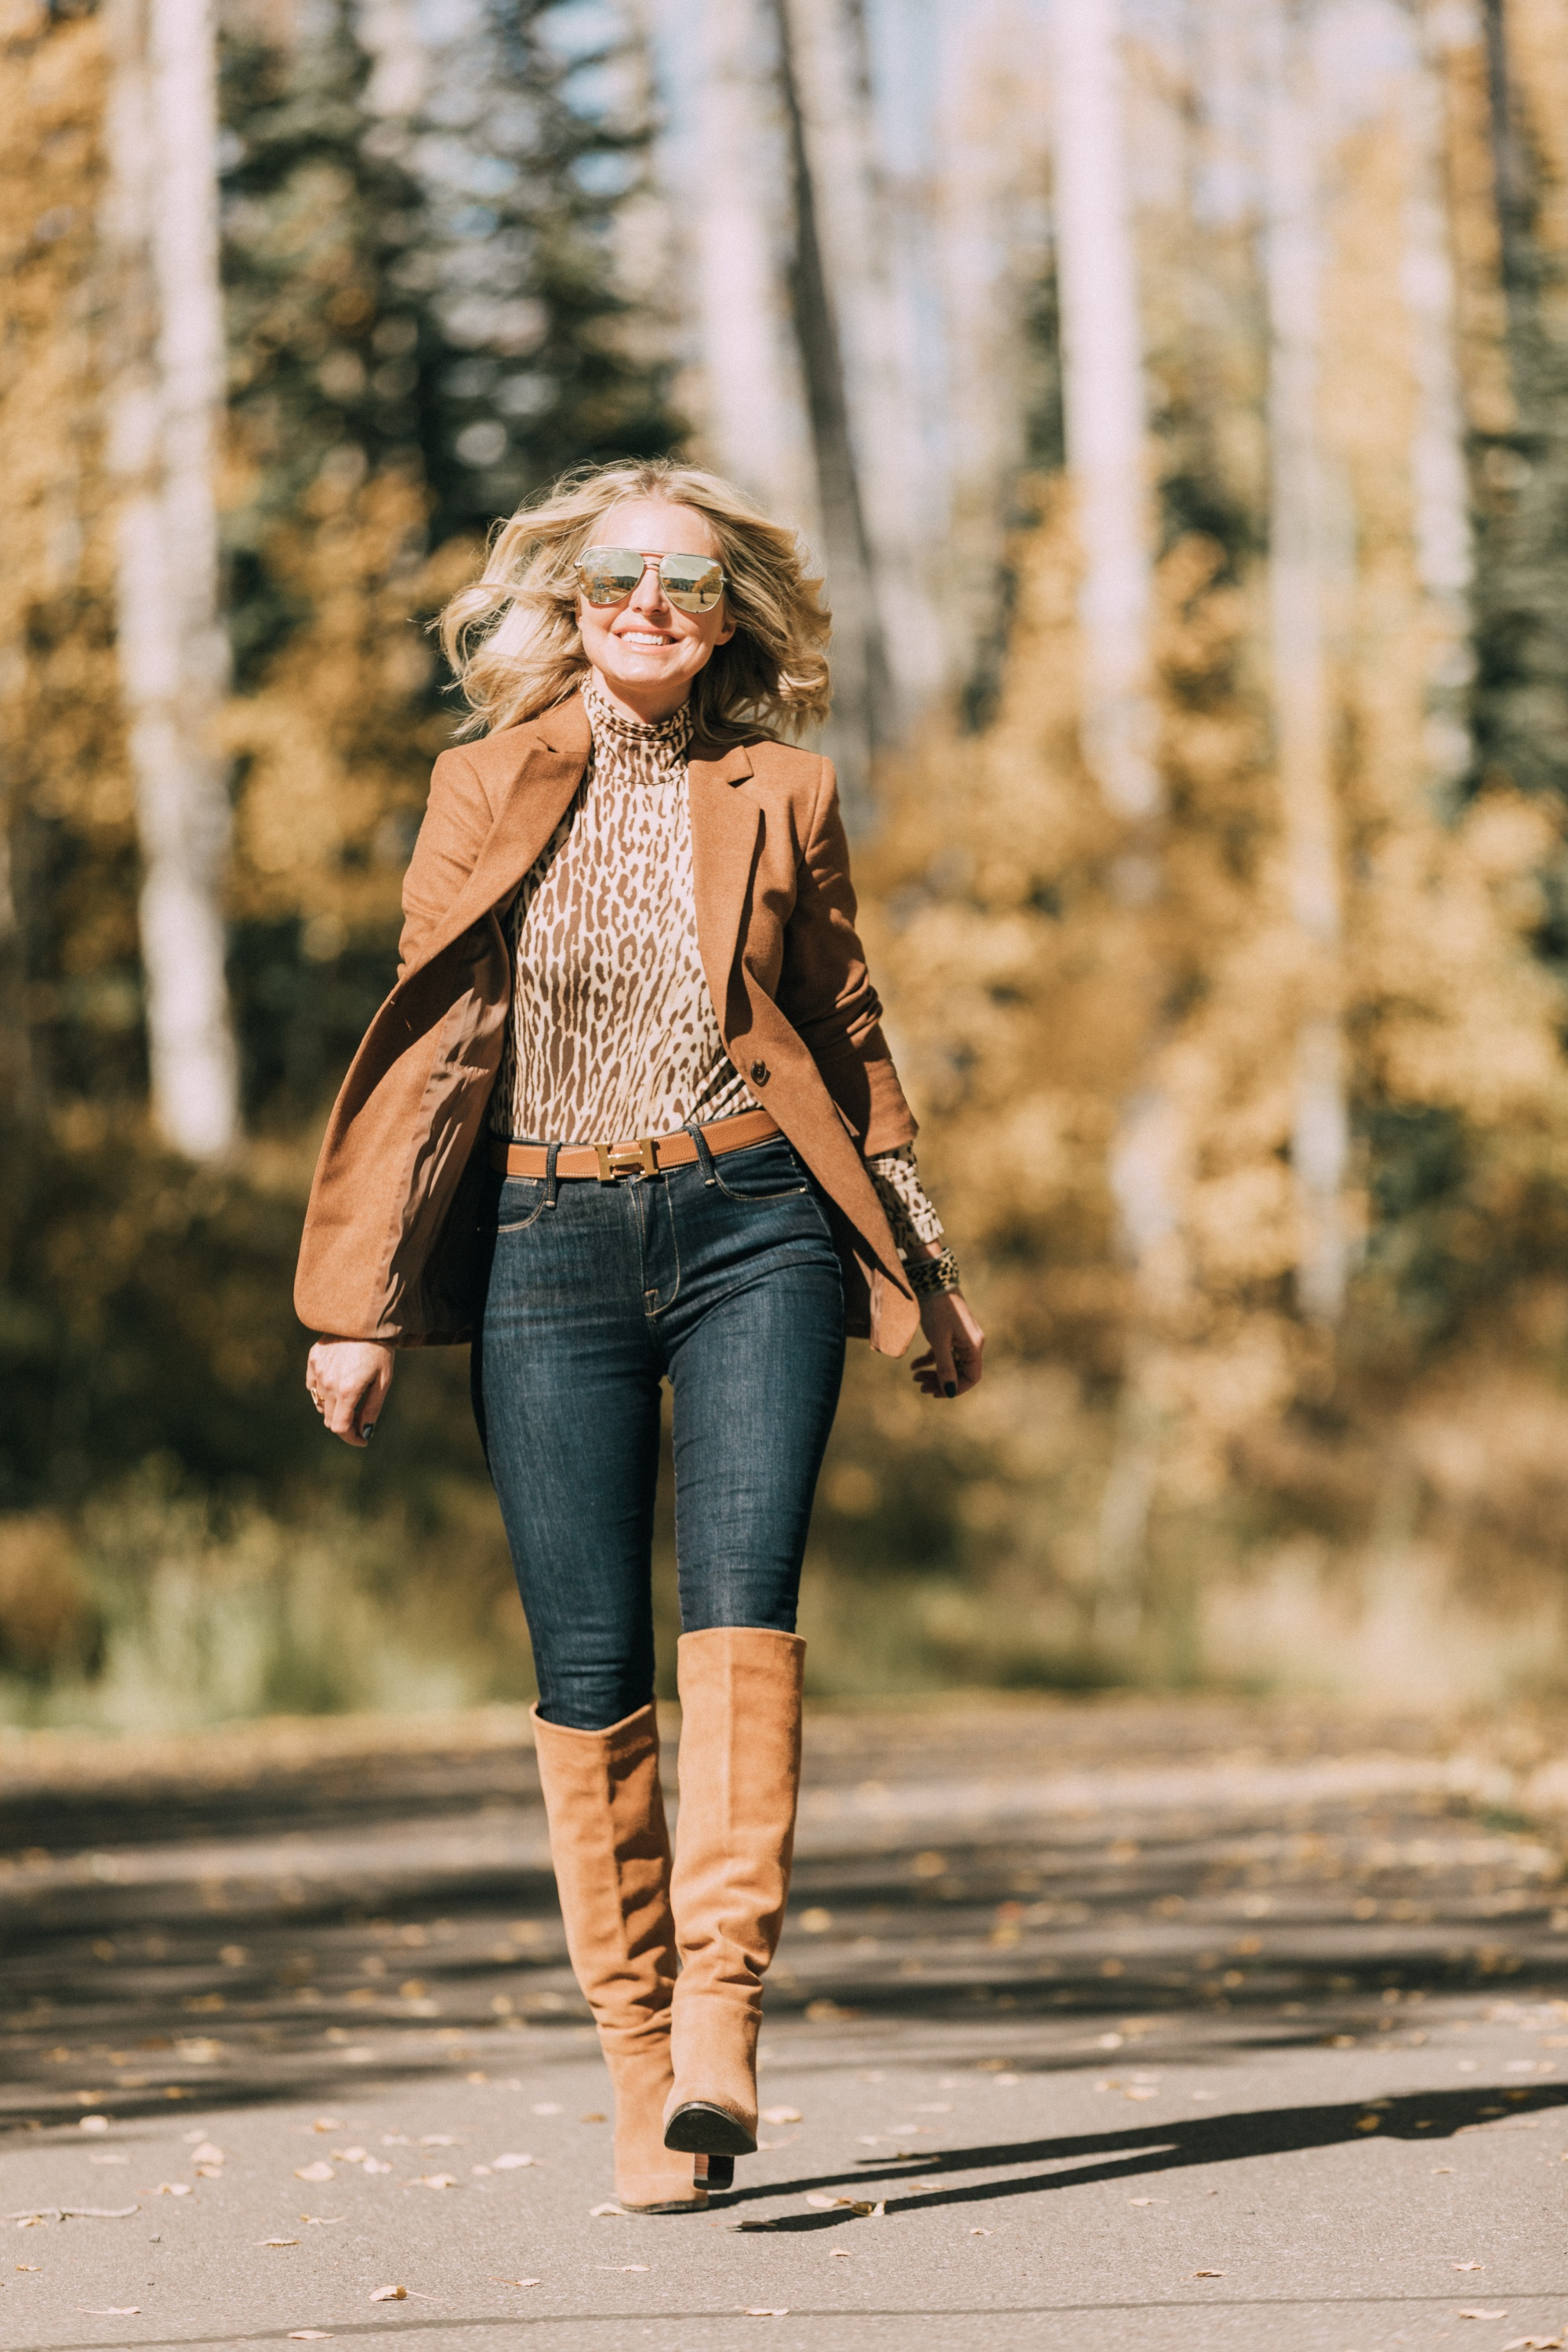 fashion blogger erin busbee wearing camel brown blazer over zimmerman leopard print turtleneck skinny jeans paired with sam edelman knee high suede boots